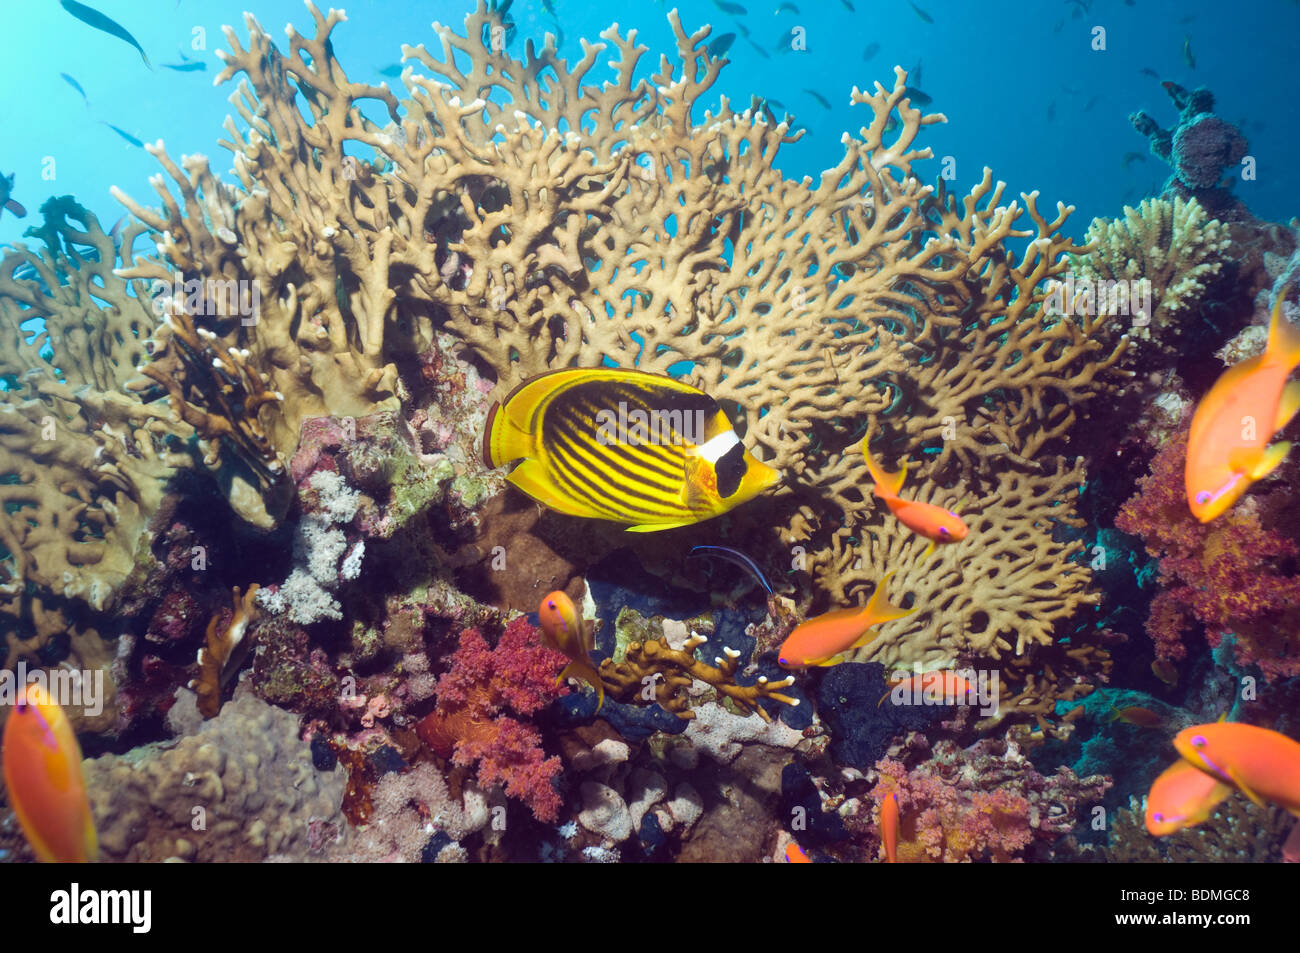 Red Sea raccoon butterflyfish (Chaetodon fasciatus) on coral reef with fire coral. Egypt, Red Sea. - Stock Image